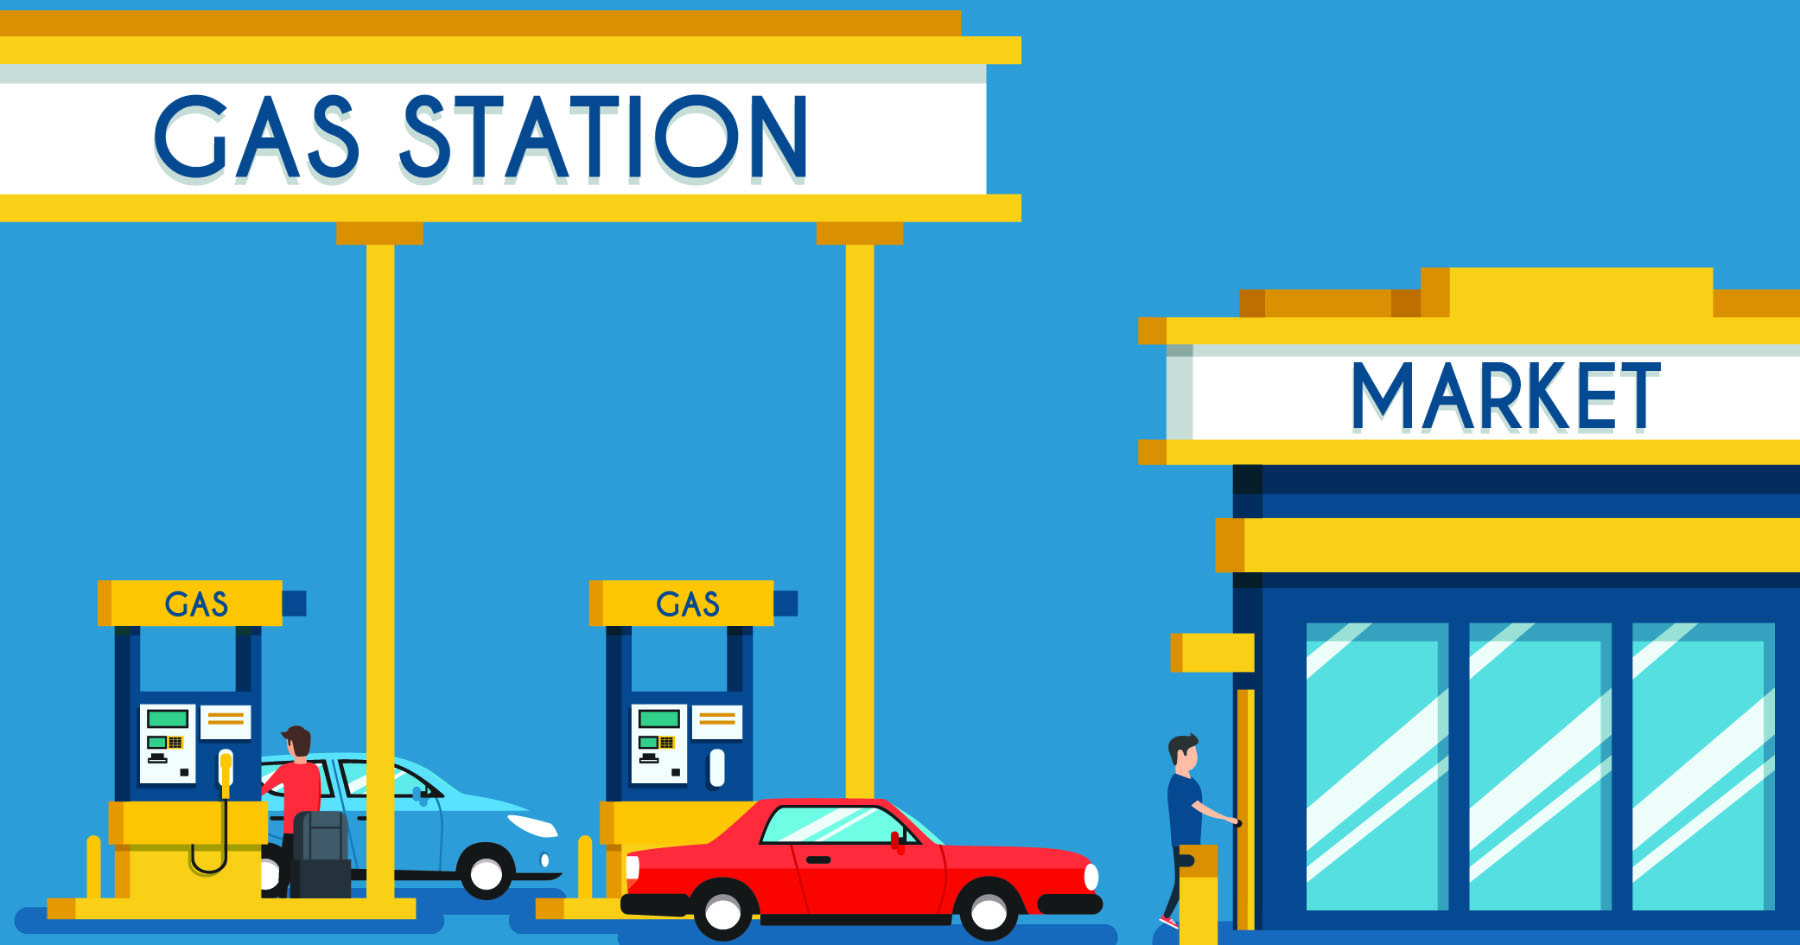 Gas Station Graphic